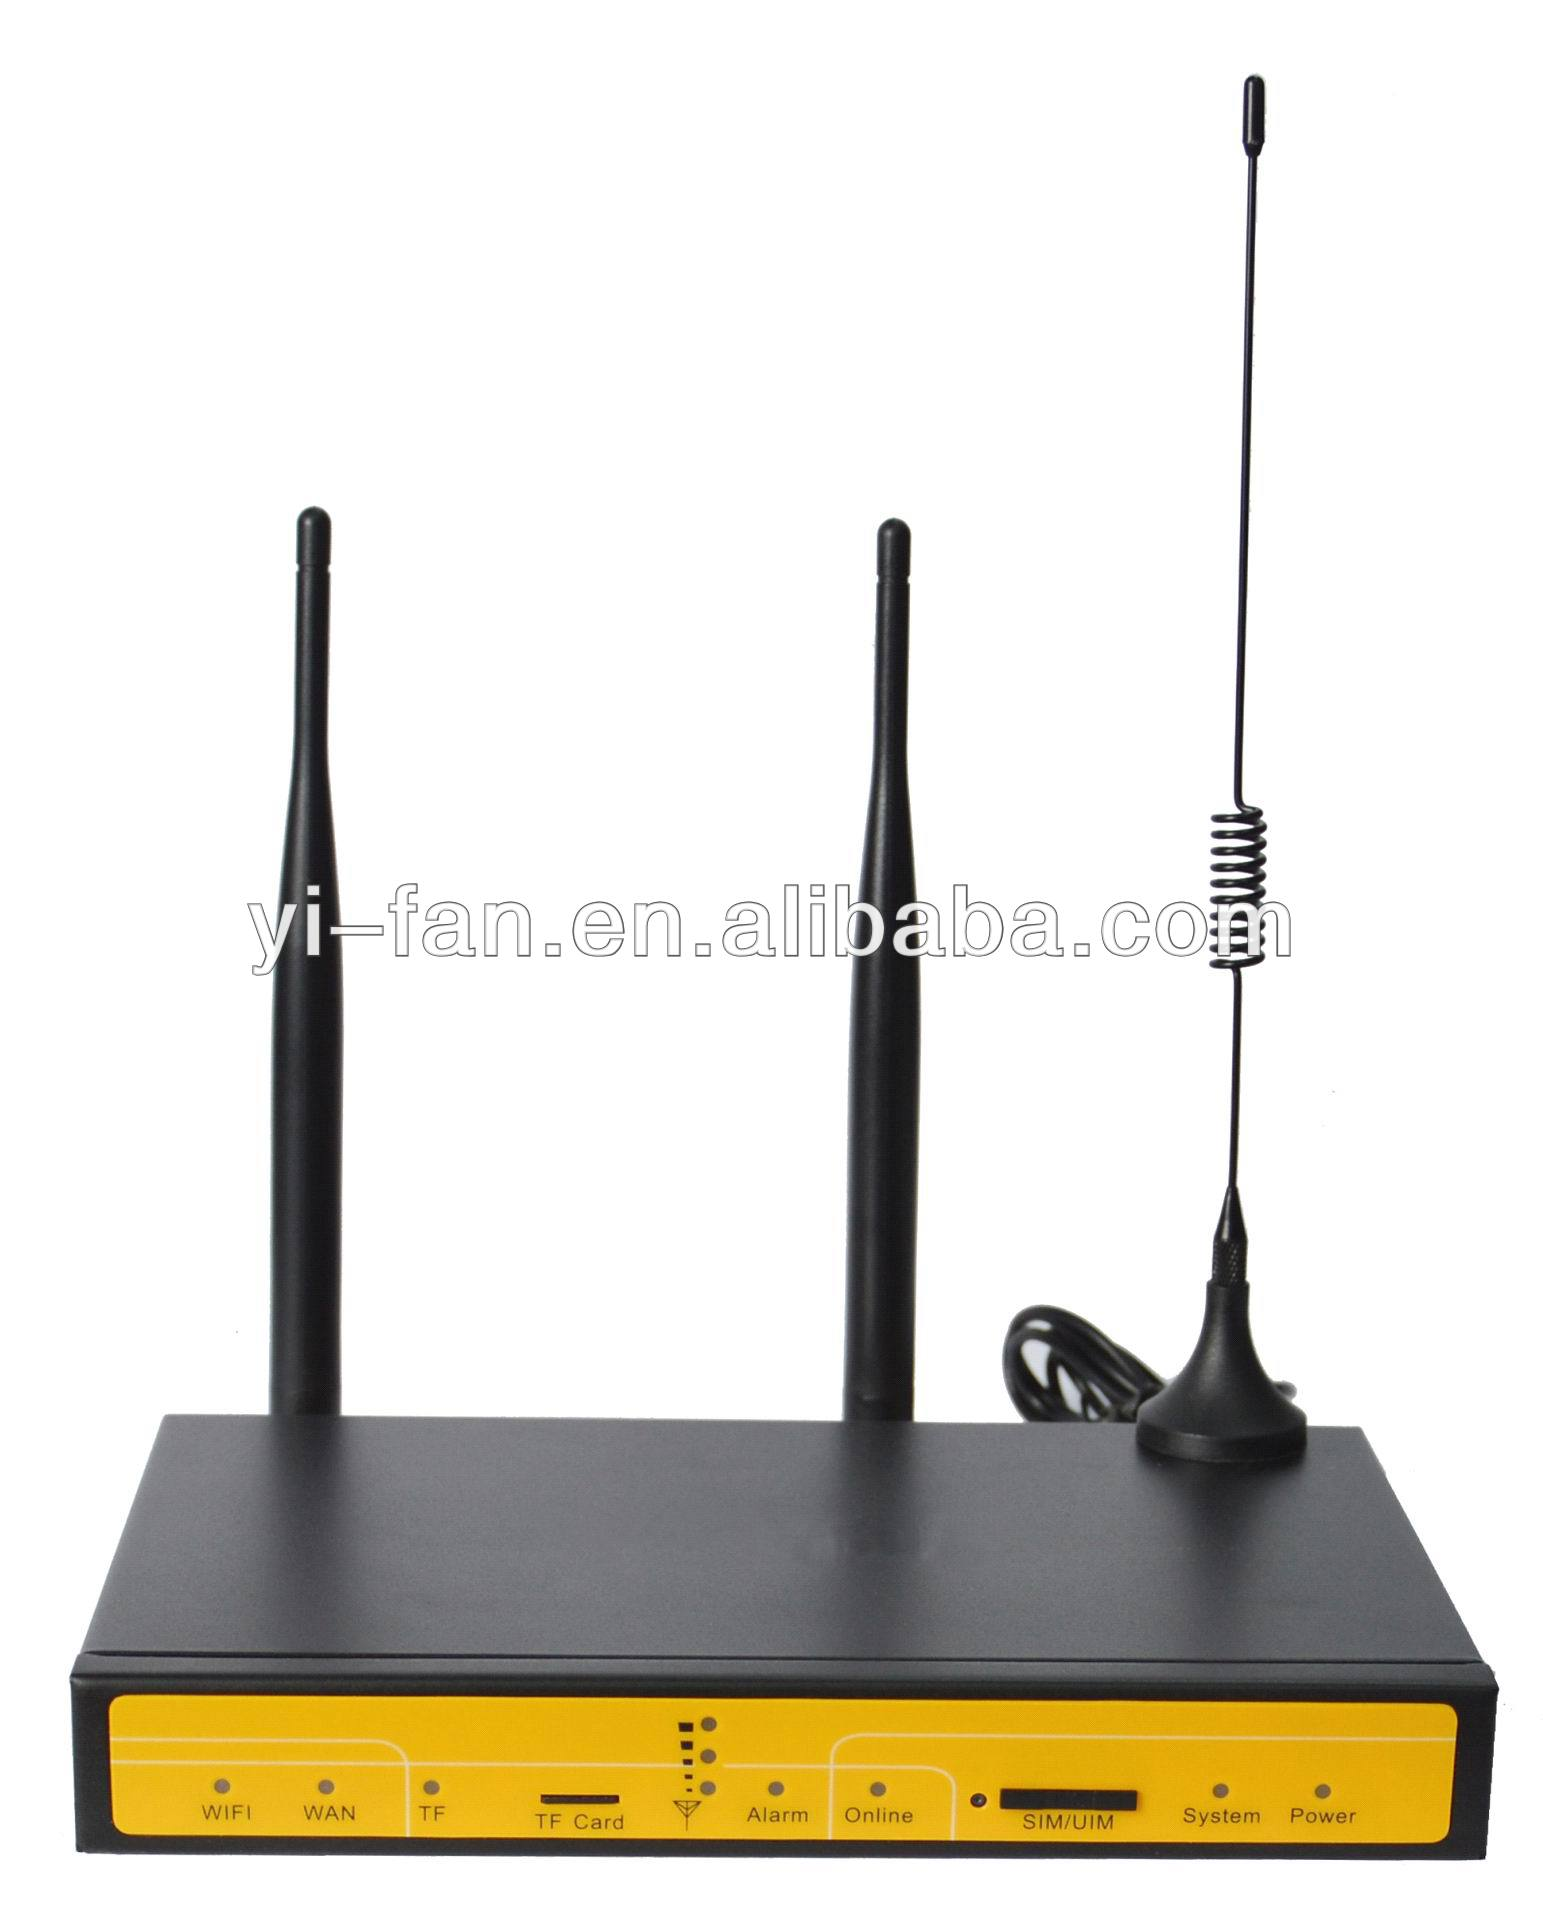 Support 44 users 3G WIFI Router with sim card slot TF card slot FOR CAR BUS WIFI(China (Mainland))